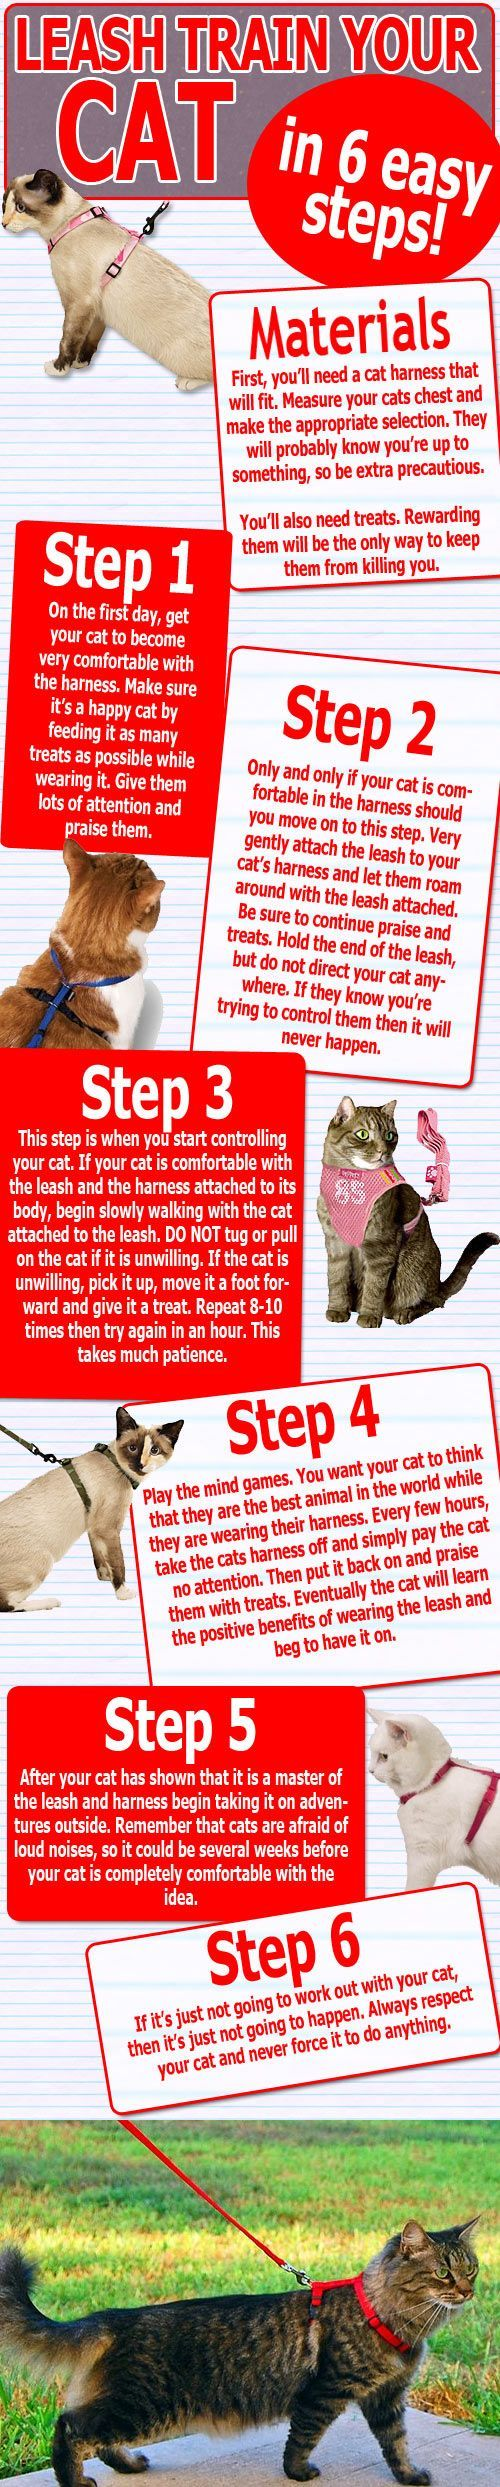 If You Ve Ever Wanted To Teach Your Cat How To Walk On A Leash This Helpful Infographic Shows You In 6 Easy Steps Crazy Cats Cat Care Leash Training